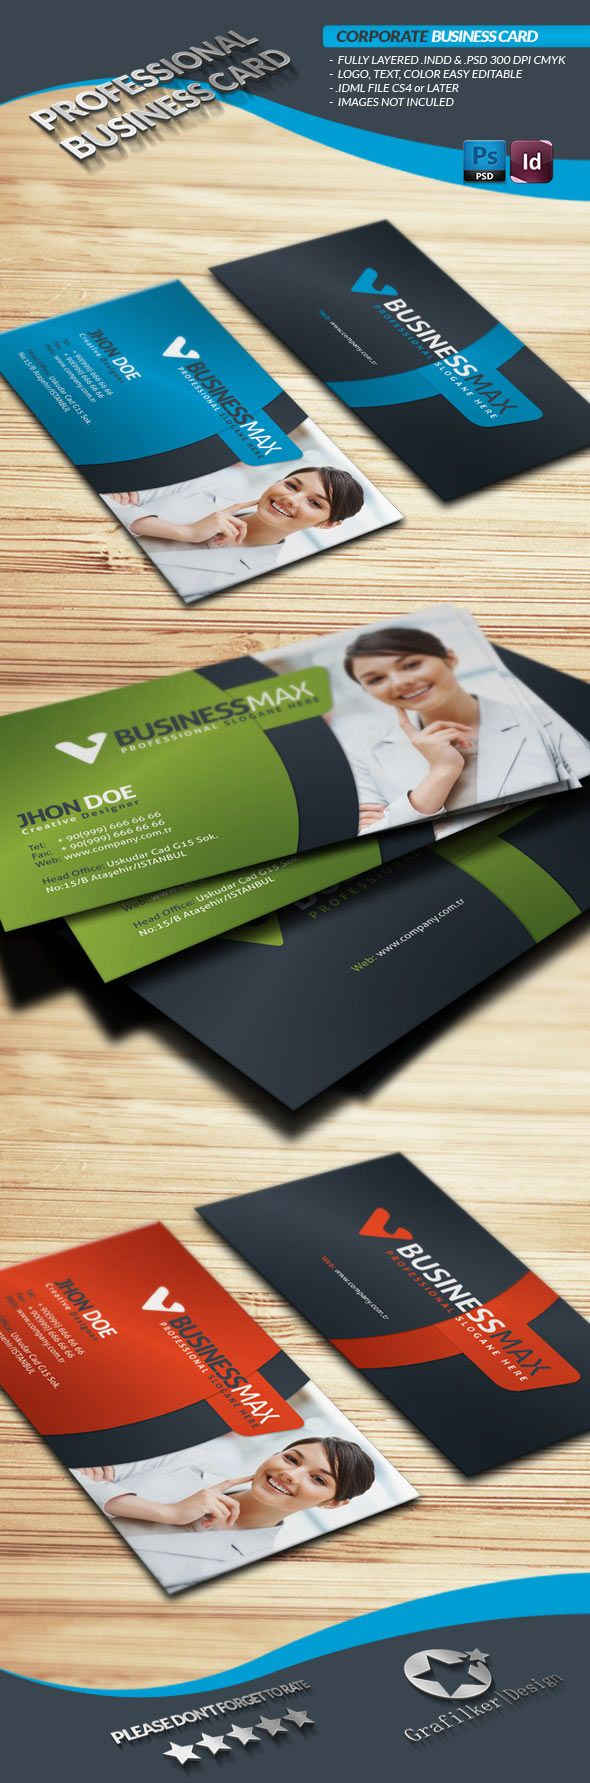 15 premium business card templates in photoshop illustrator 15 premium business card templates in photoshop illustrator indesign formats reheart Gallery